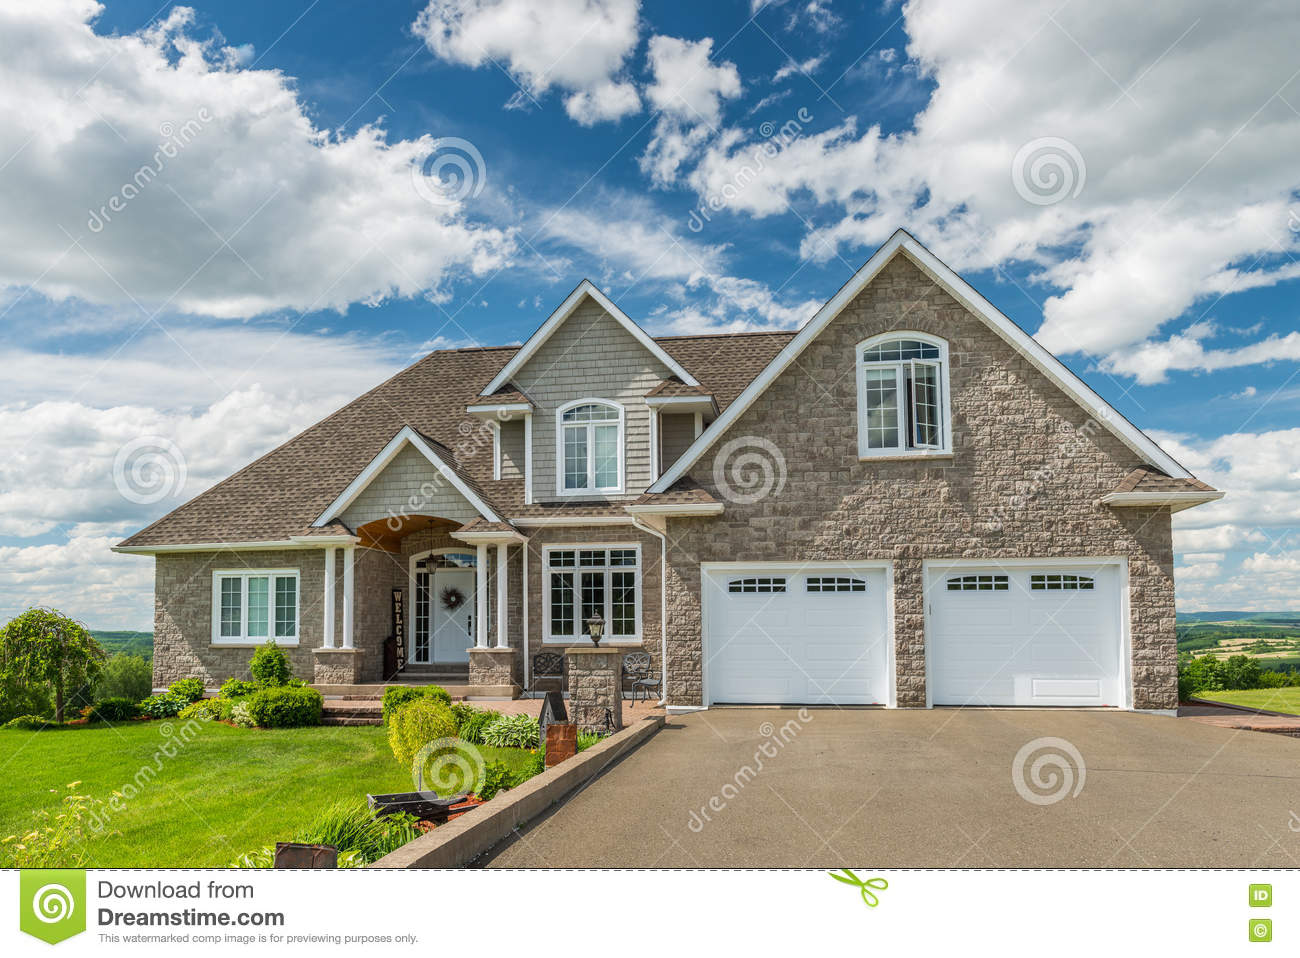 Download House on a Hill stock photo. Image of hilltop, mortgage - 76715712